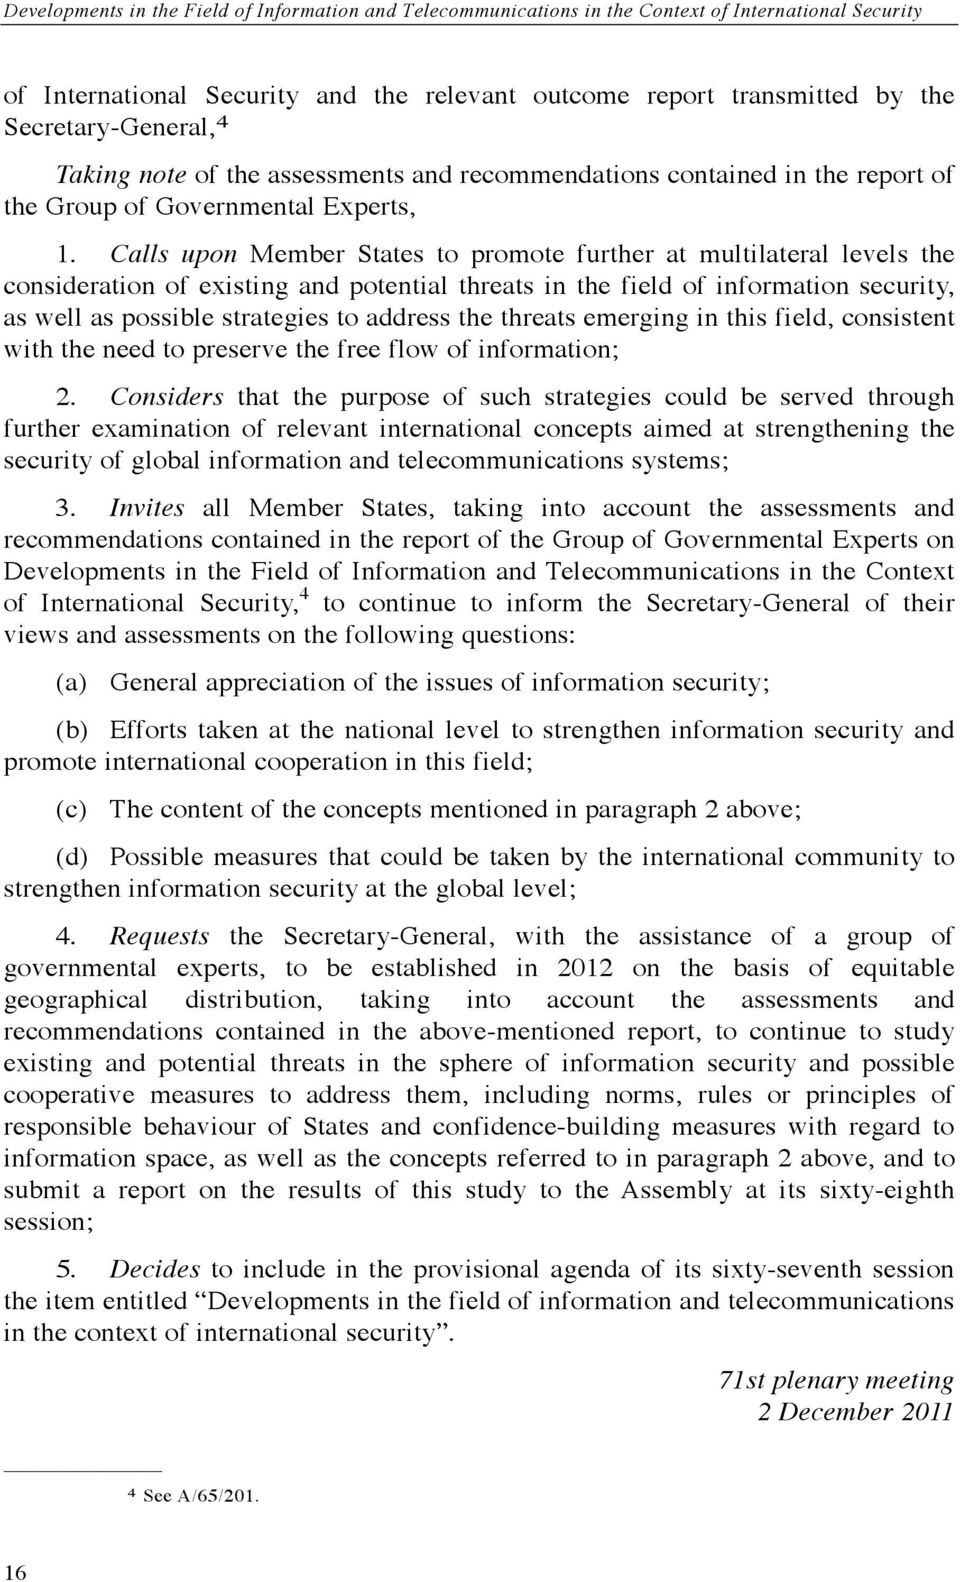 Calls upon Member States to promote further at multilateral levels the consideration of existing and potential threats in the field of information security, as well as possible strategies to address